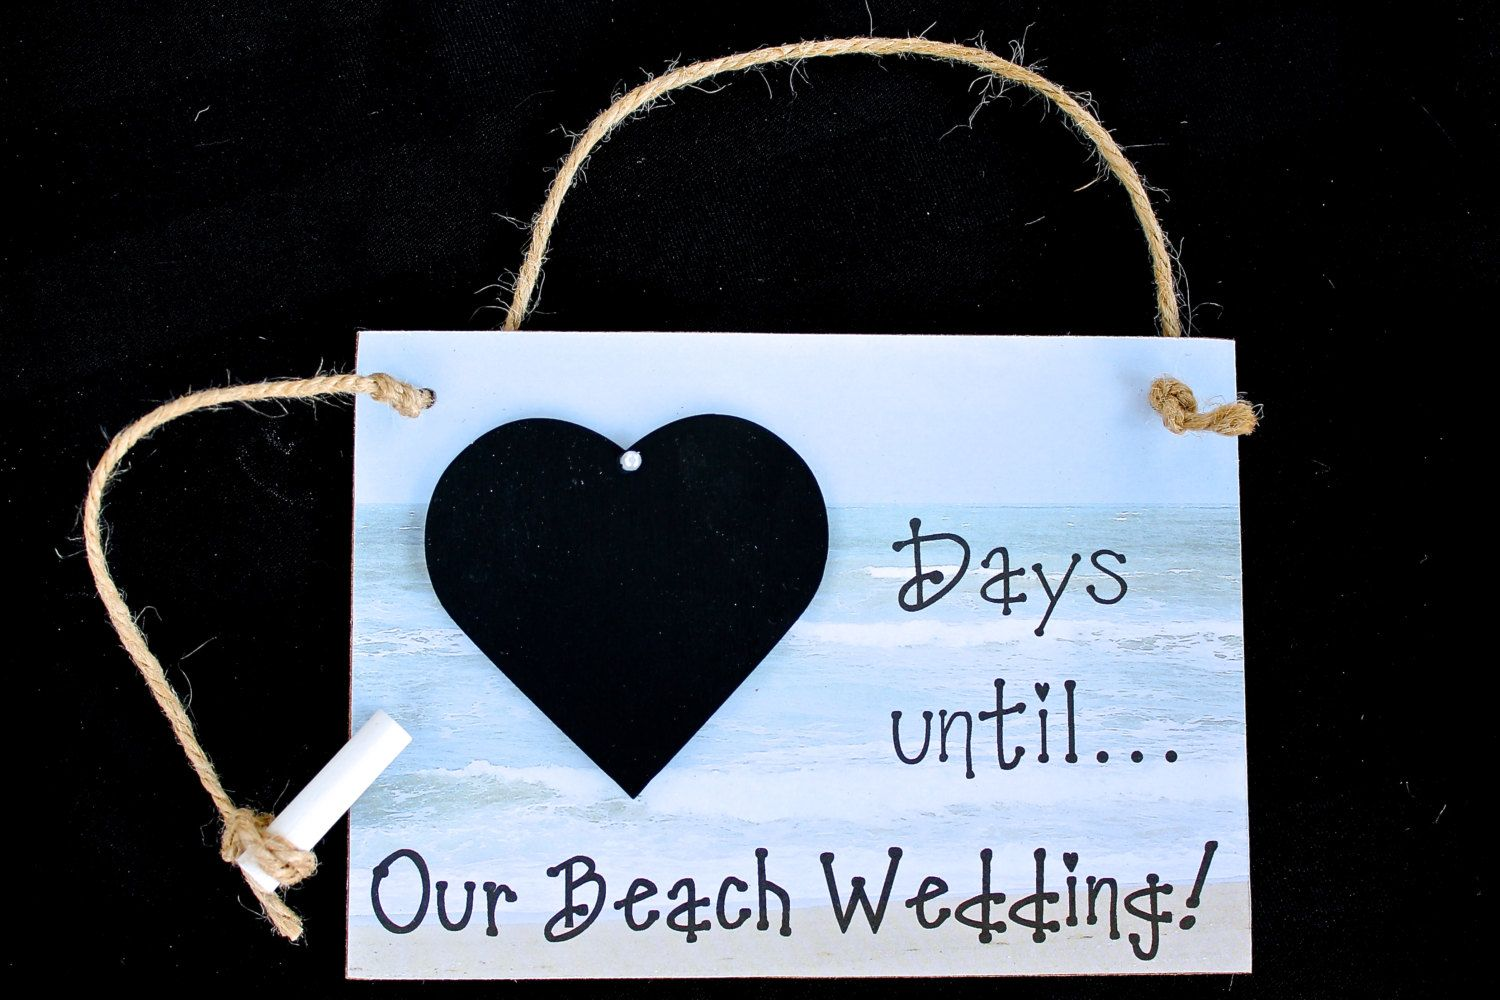 Wedding Chalkboard Countdown Days Until Our Beach Destination Bridal Shower Gift By CountdownChalkboards On Etsy